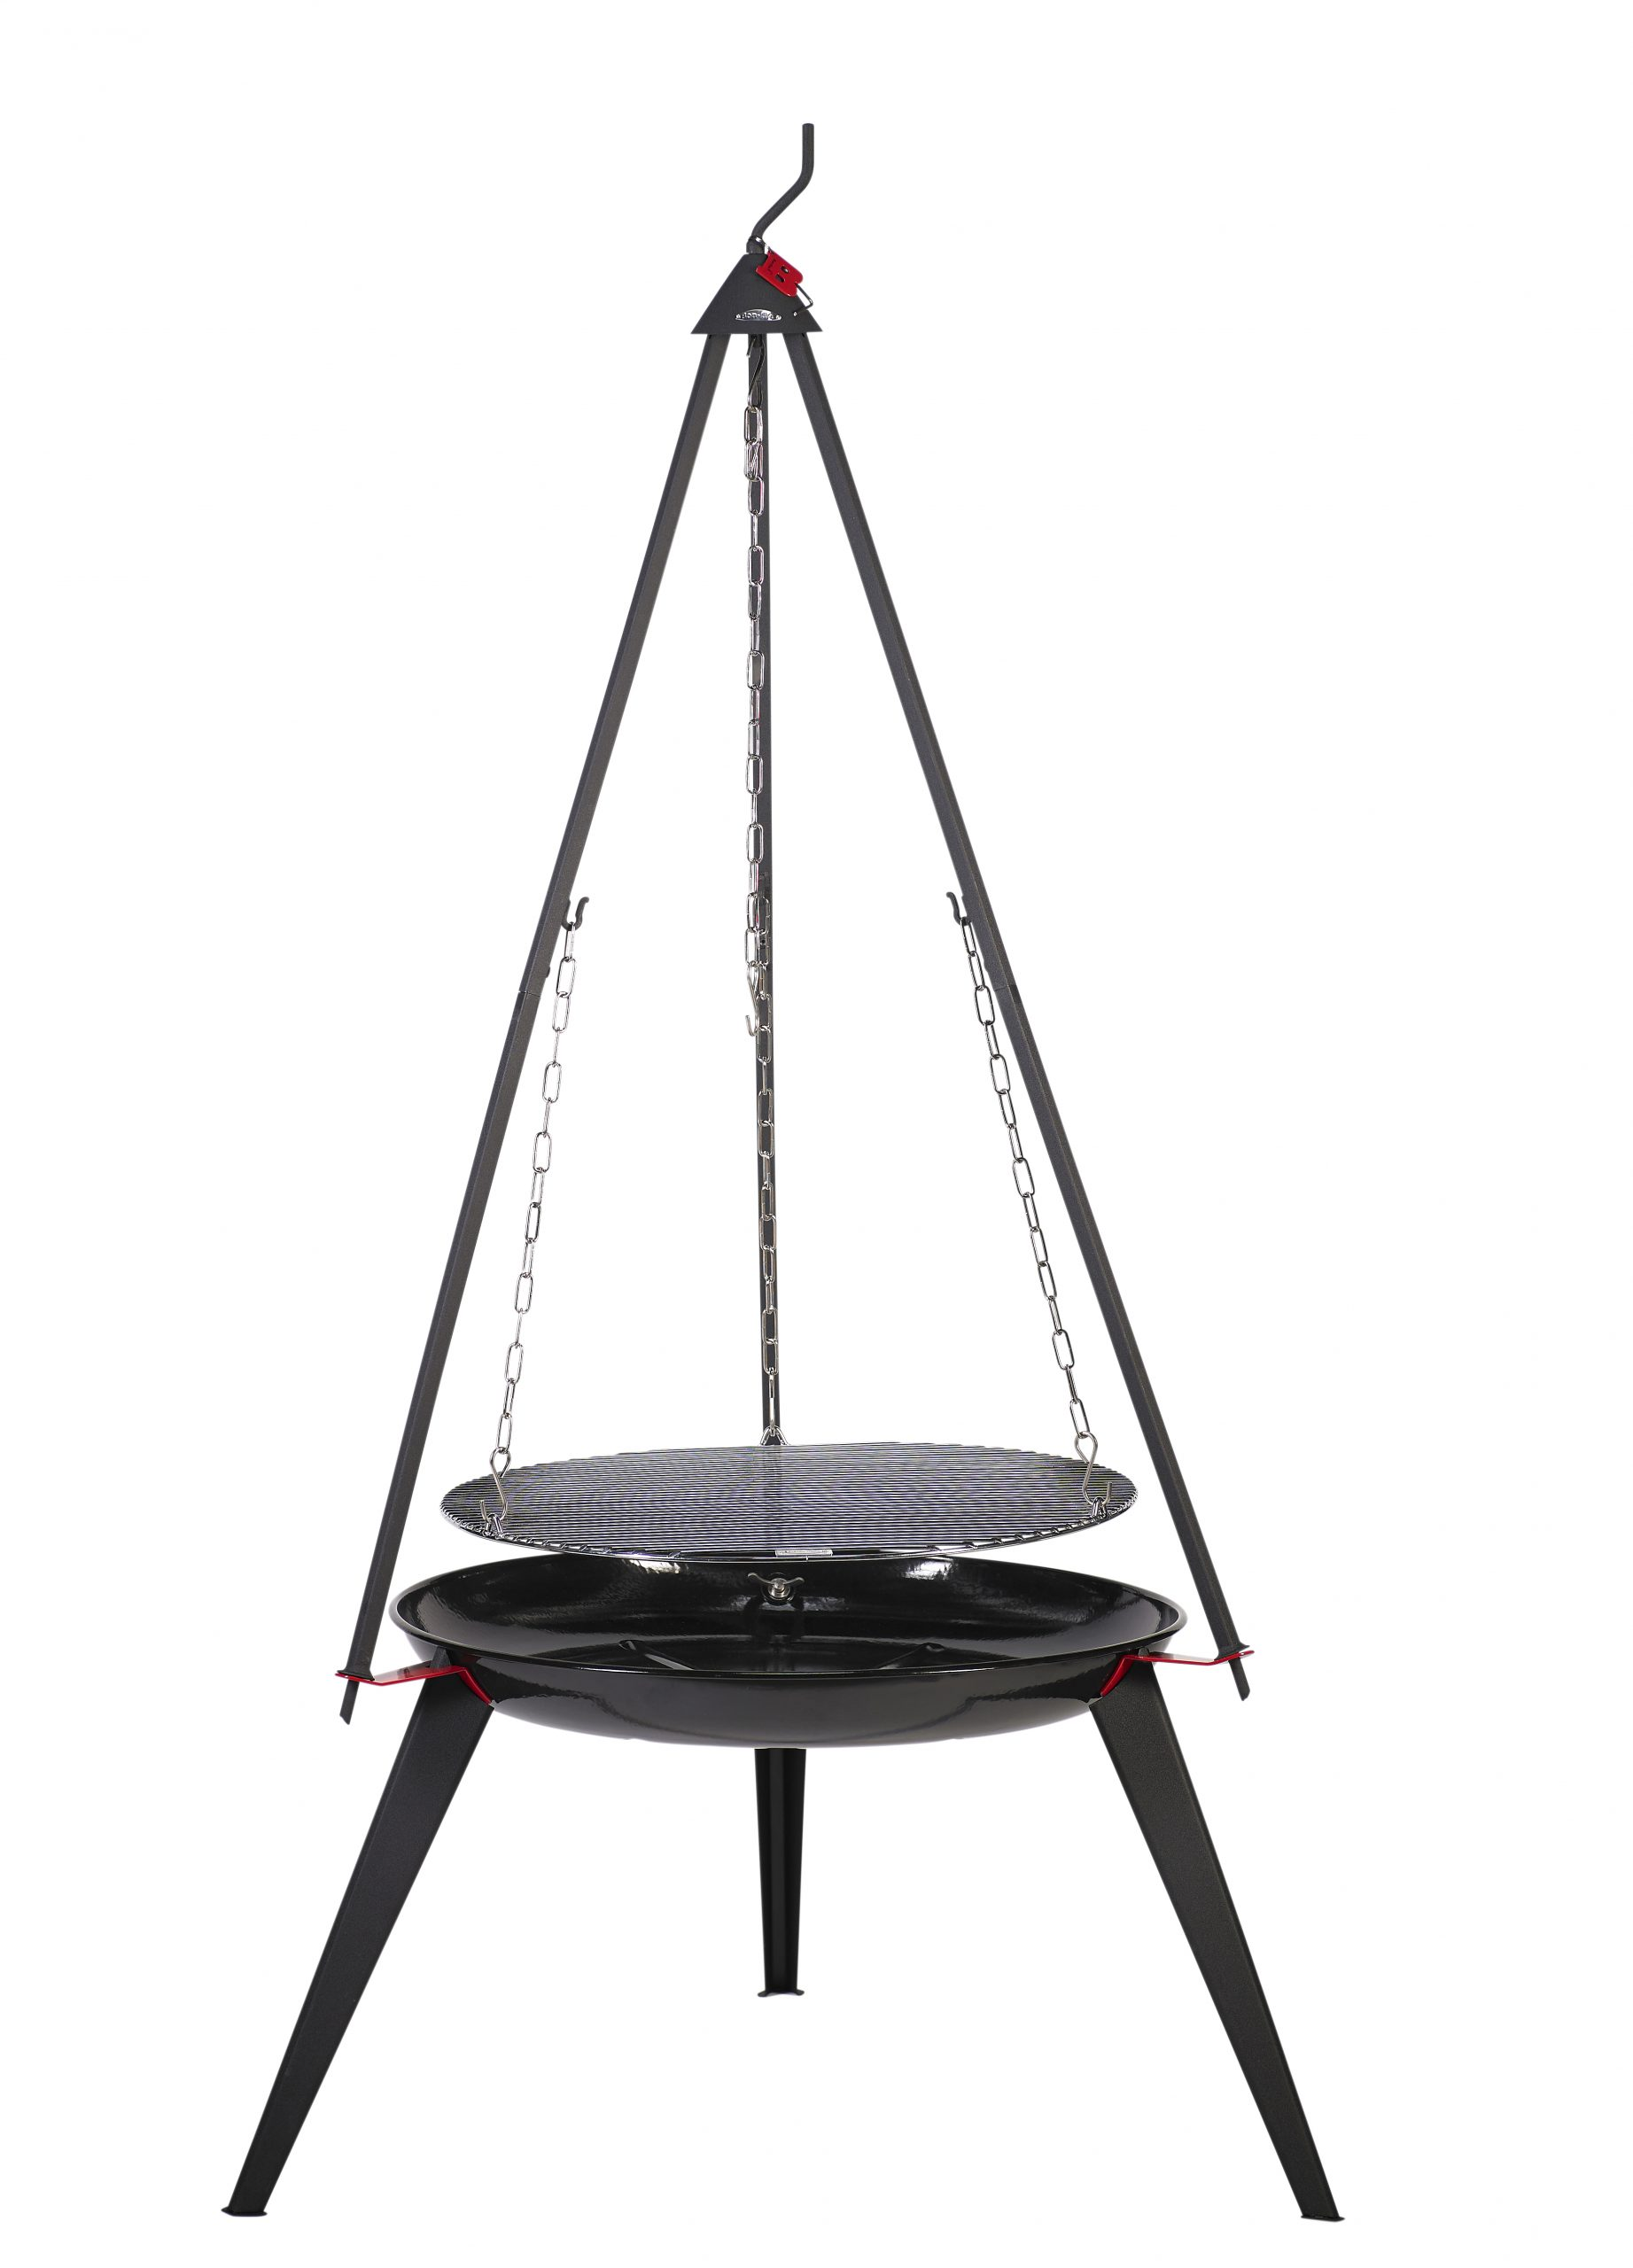 Bon-fire Brazier with long legs and fittings for Basic set.